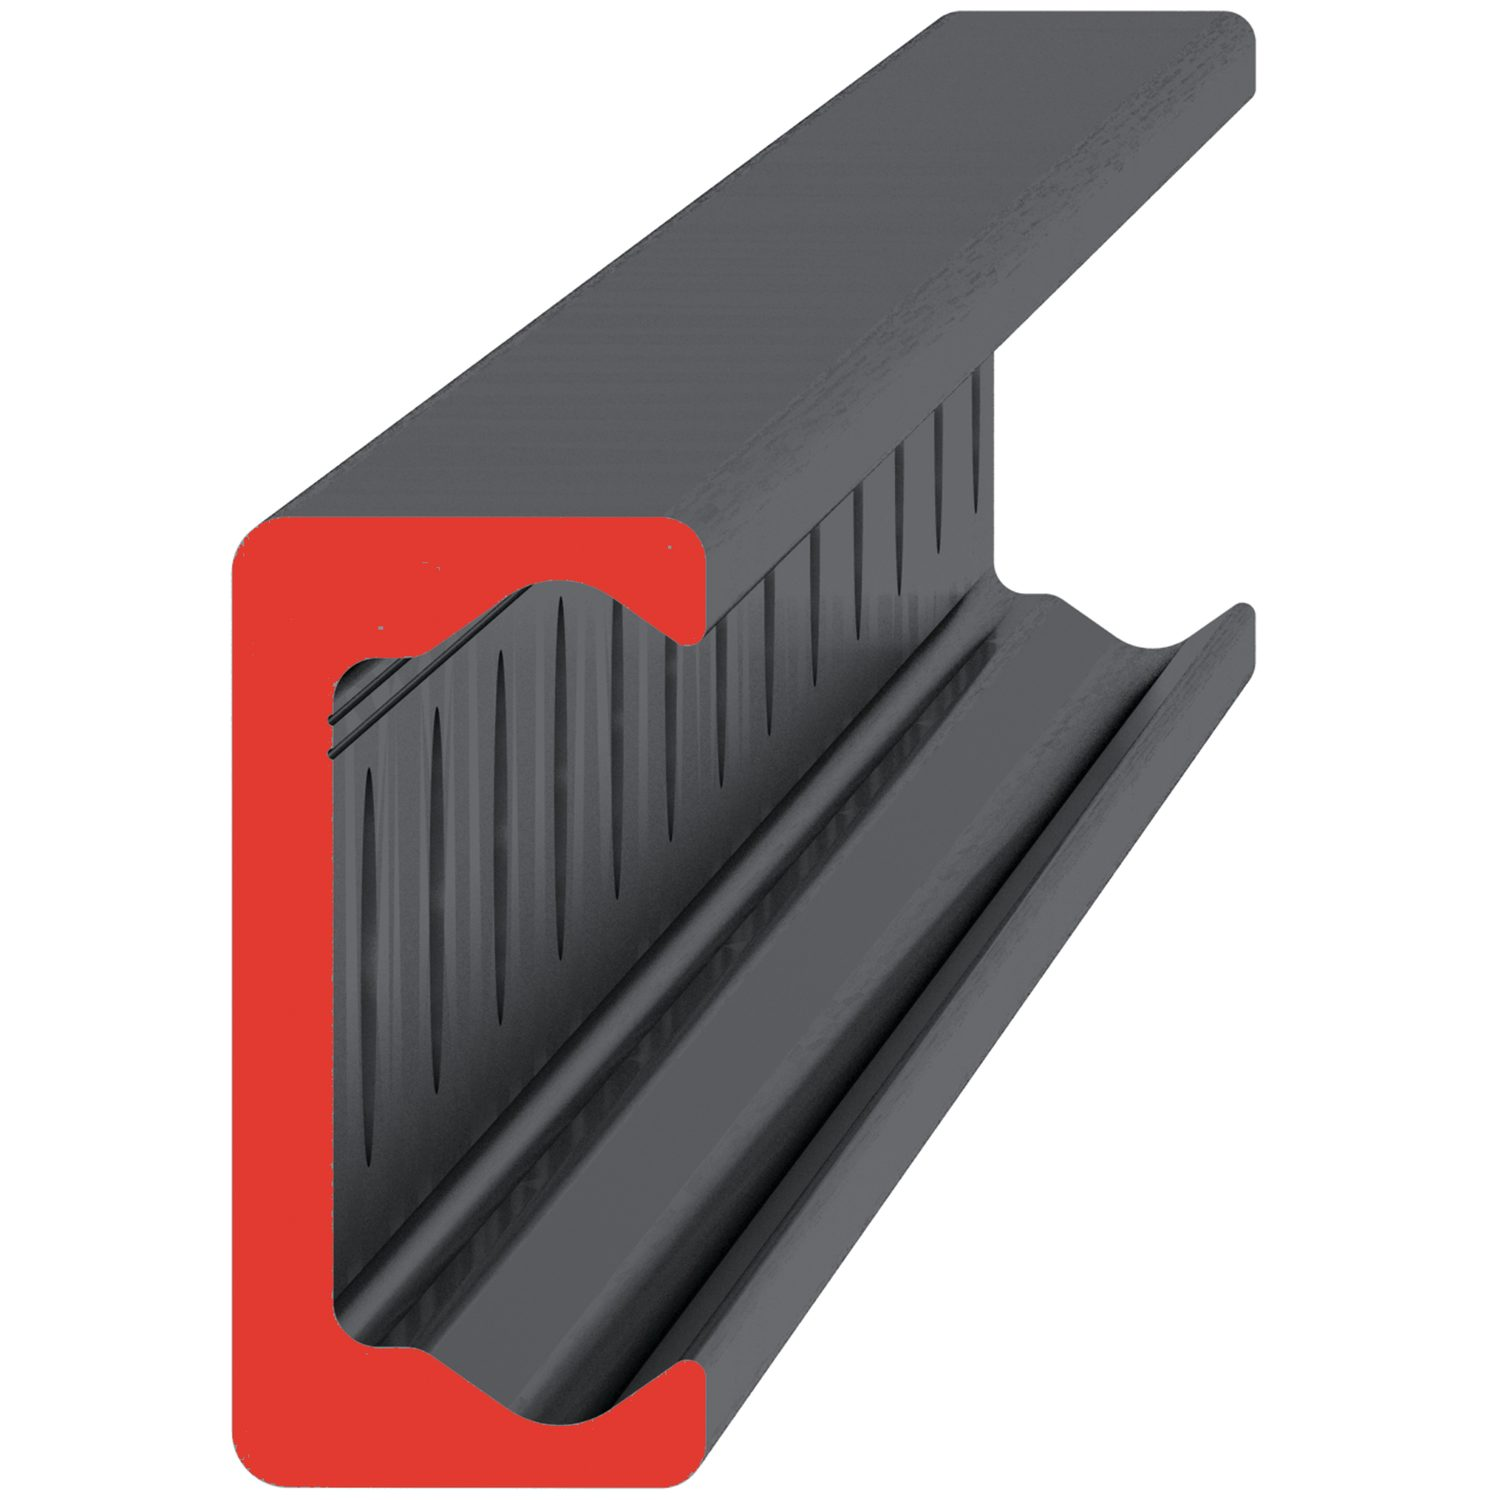 Product L1935.TL, Medium Duty T Rail counterbored holes /